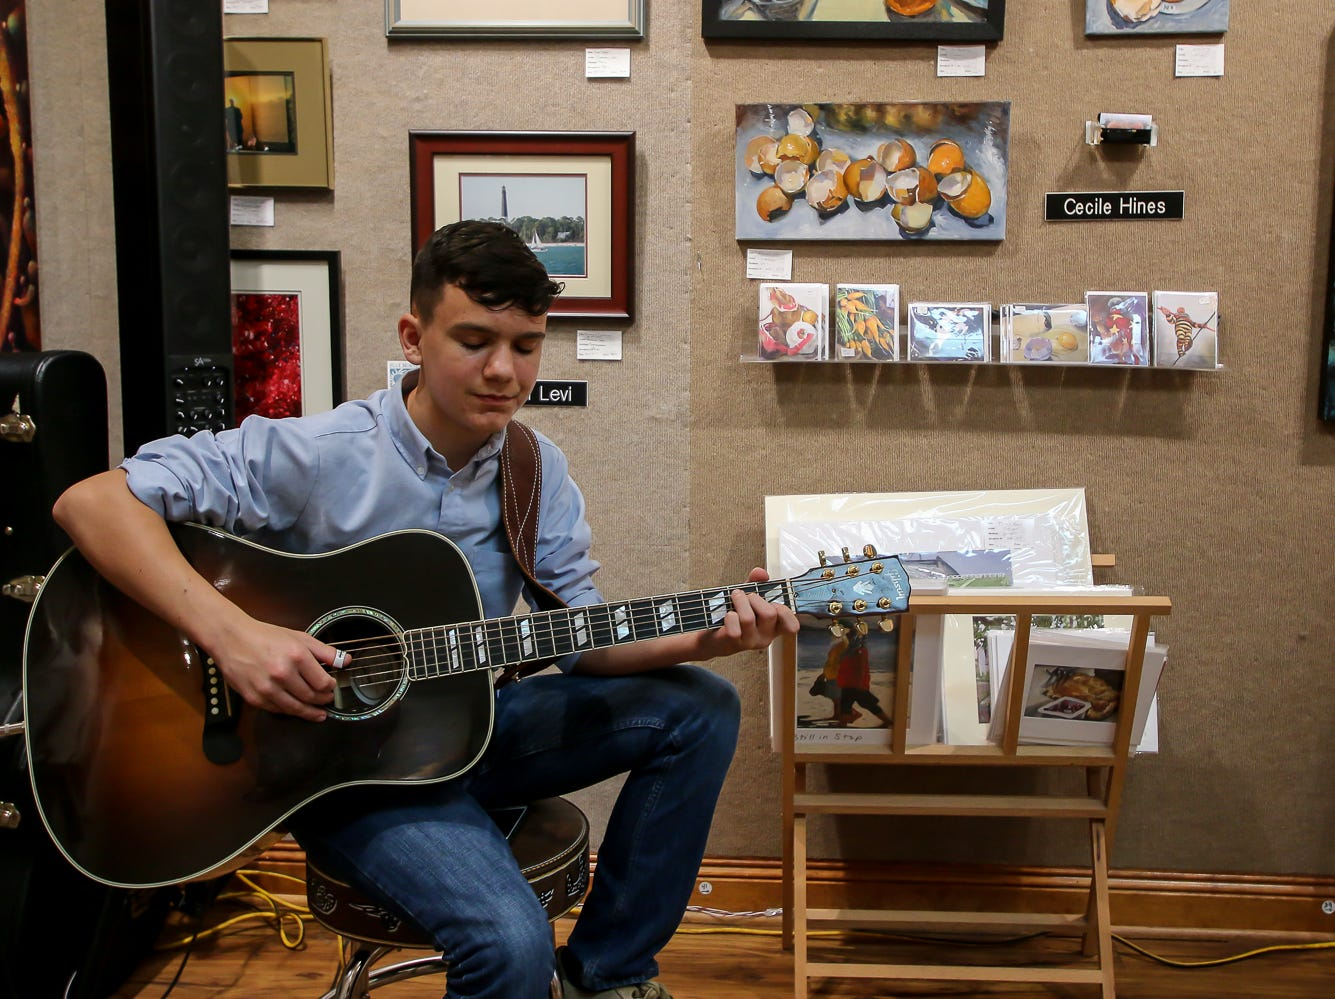 Ben Kennington, 13, performs inside Blue Morning Gallery during Gallery Night on Friday, February 22, 2019.